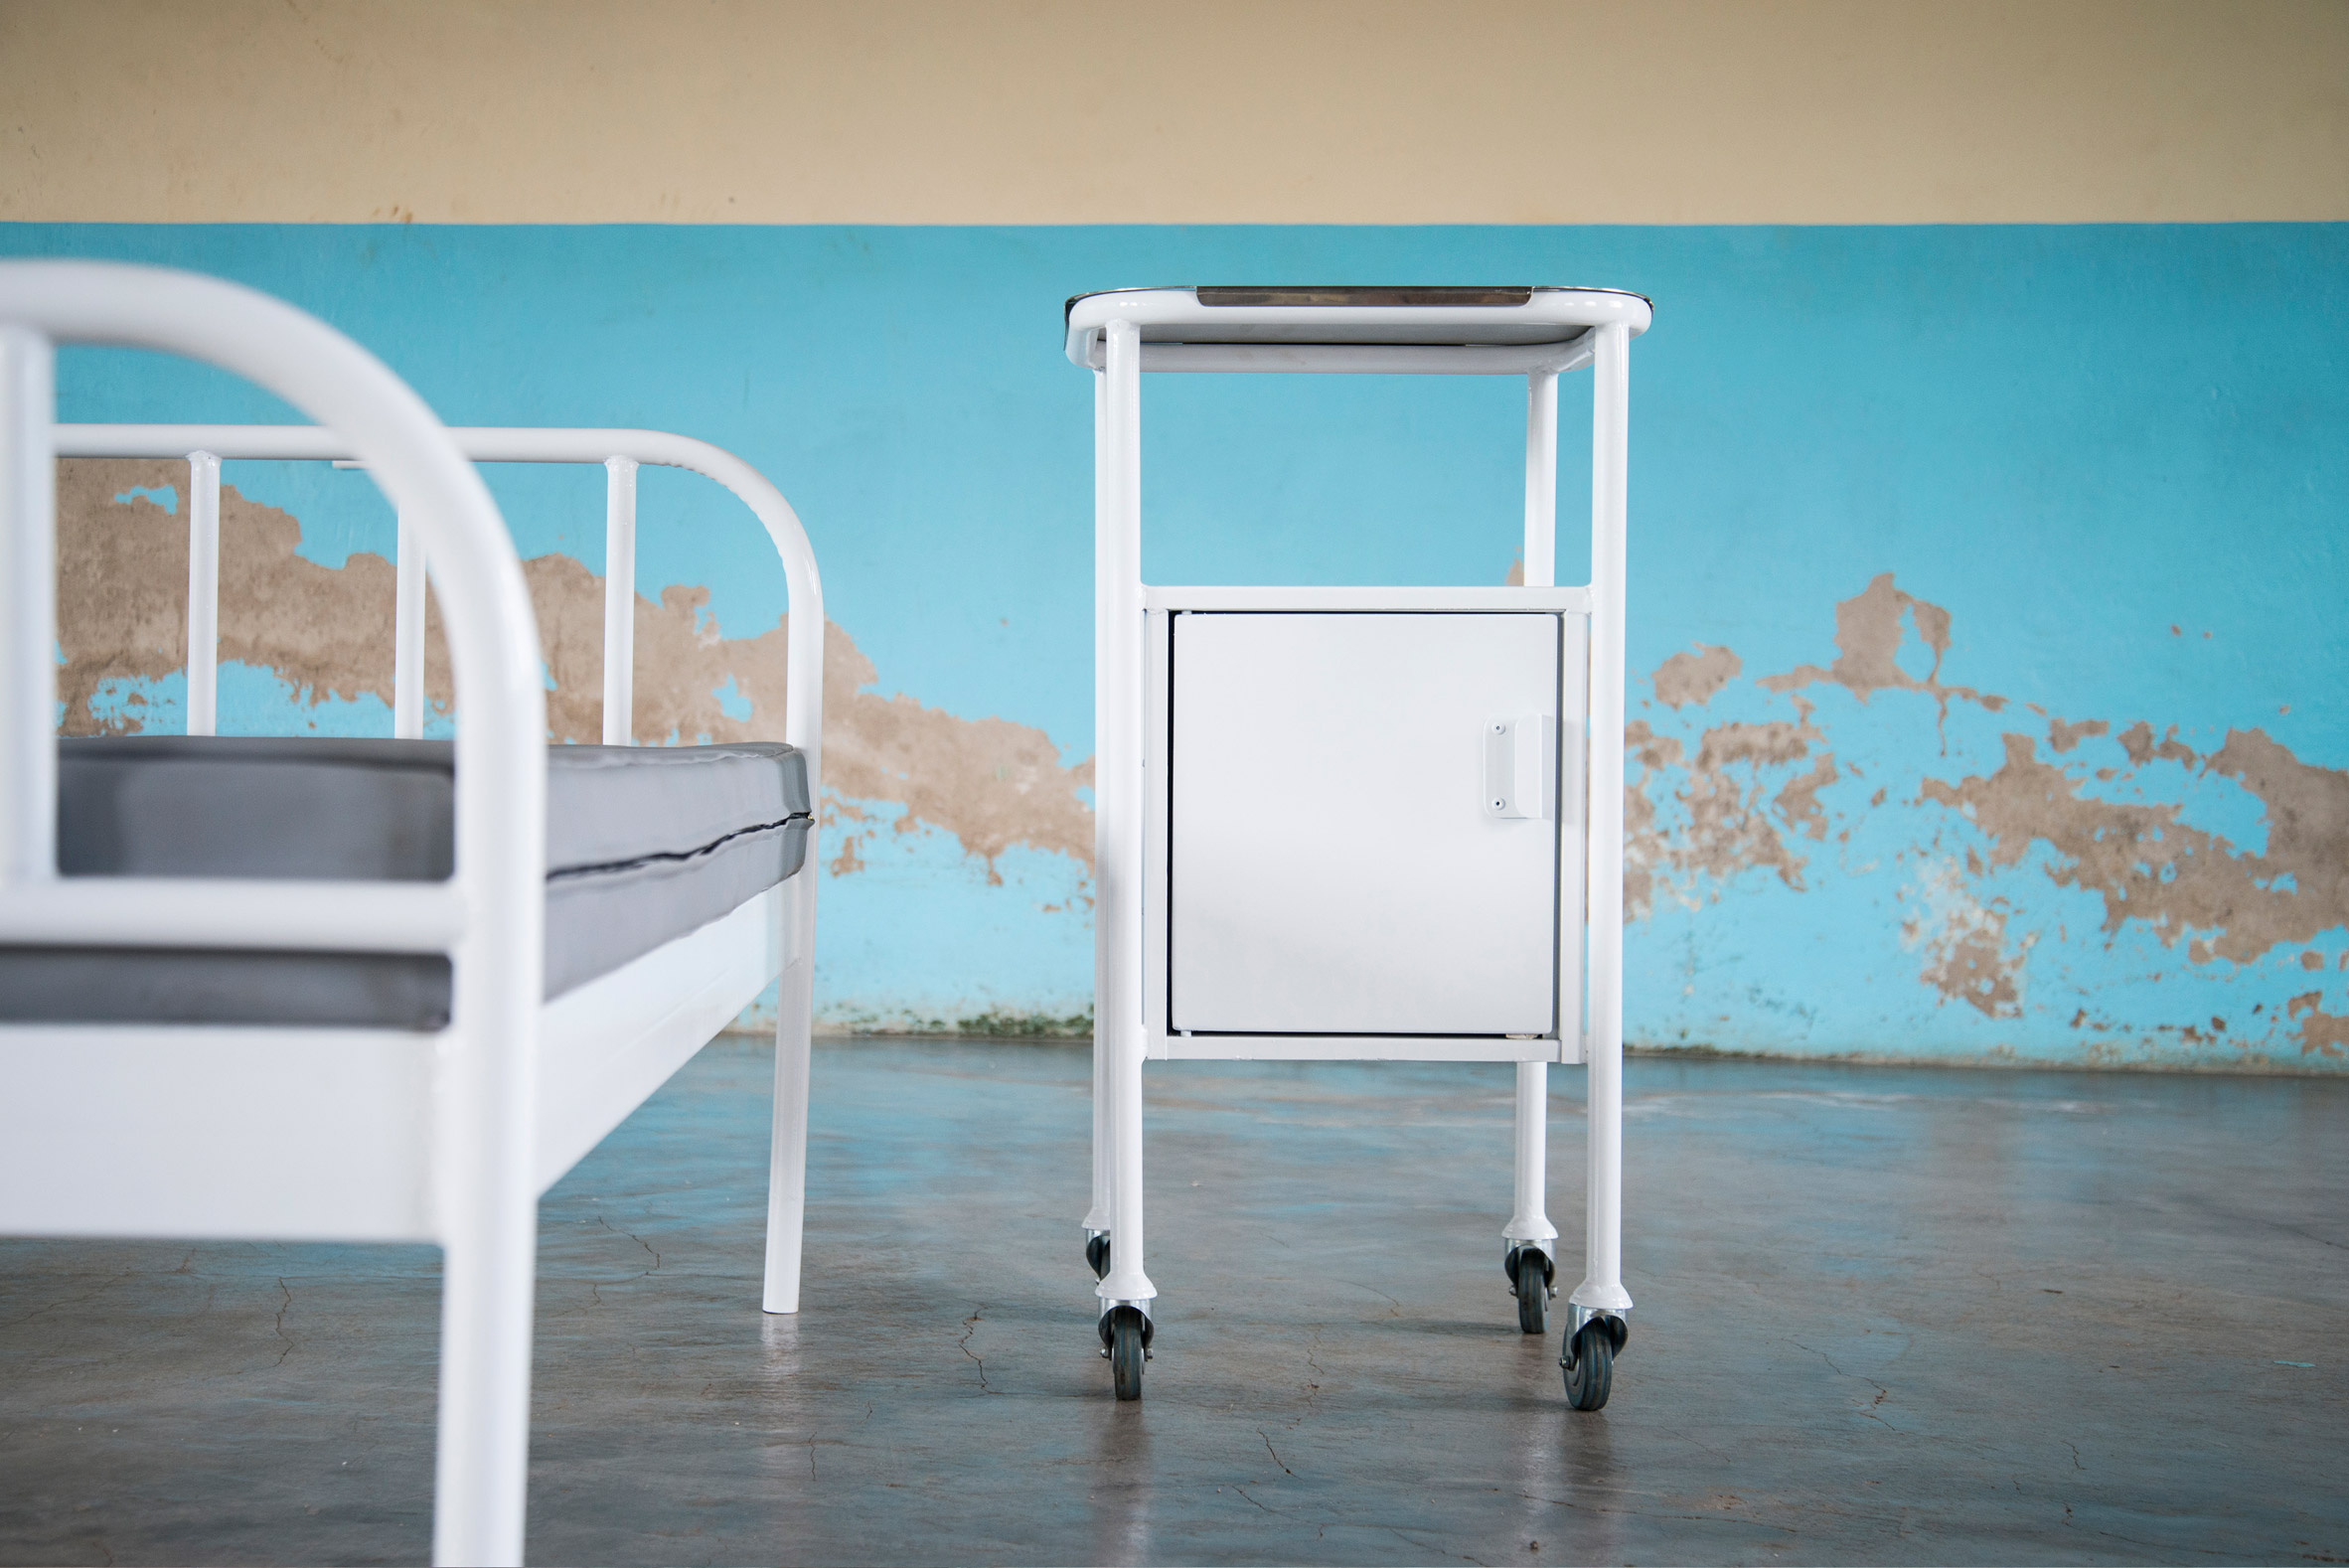 Super Local creates affordable equipment for hospitals in Malawi